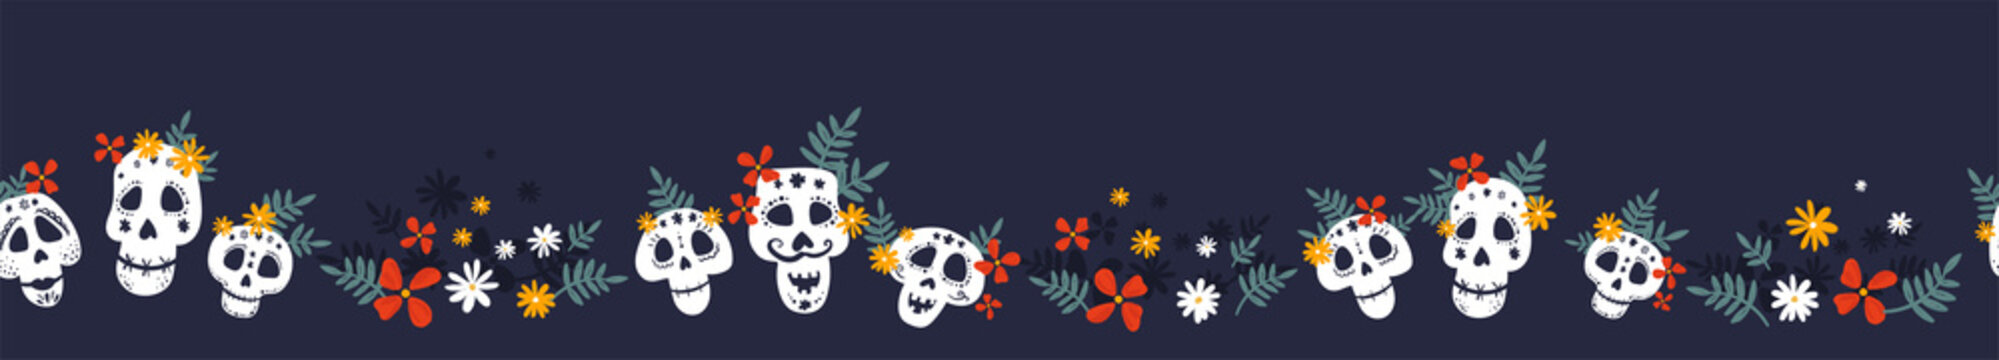 Day of the dead, Dia de los muertos horizontal seamless pattern, hand drawn with decoration and flowers, great for textiles, banners, wallpapers, wrapping - vector design